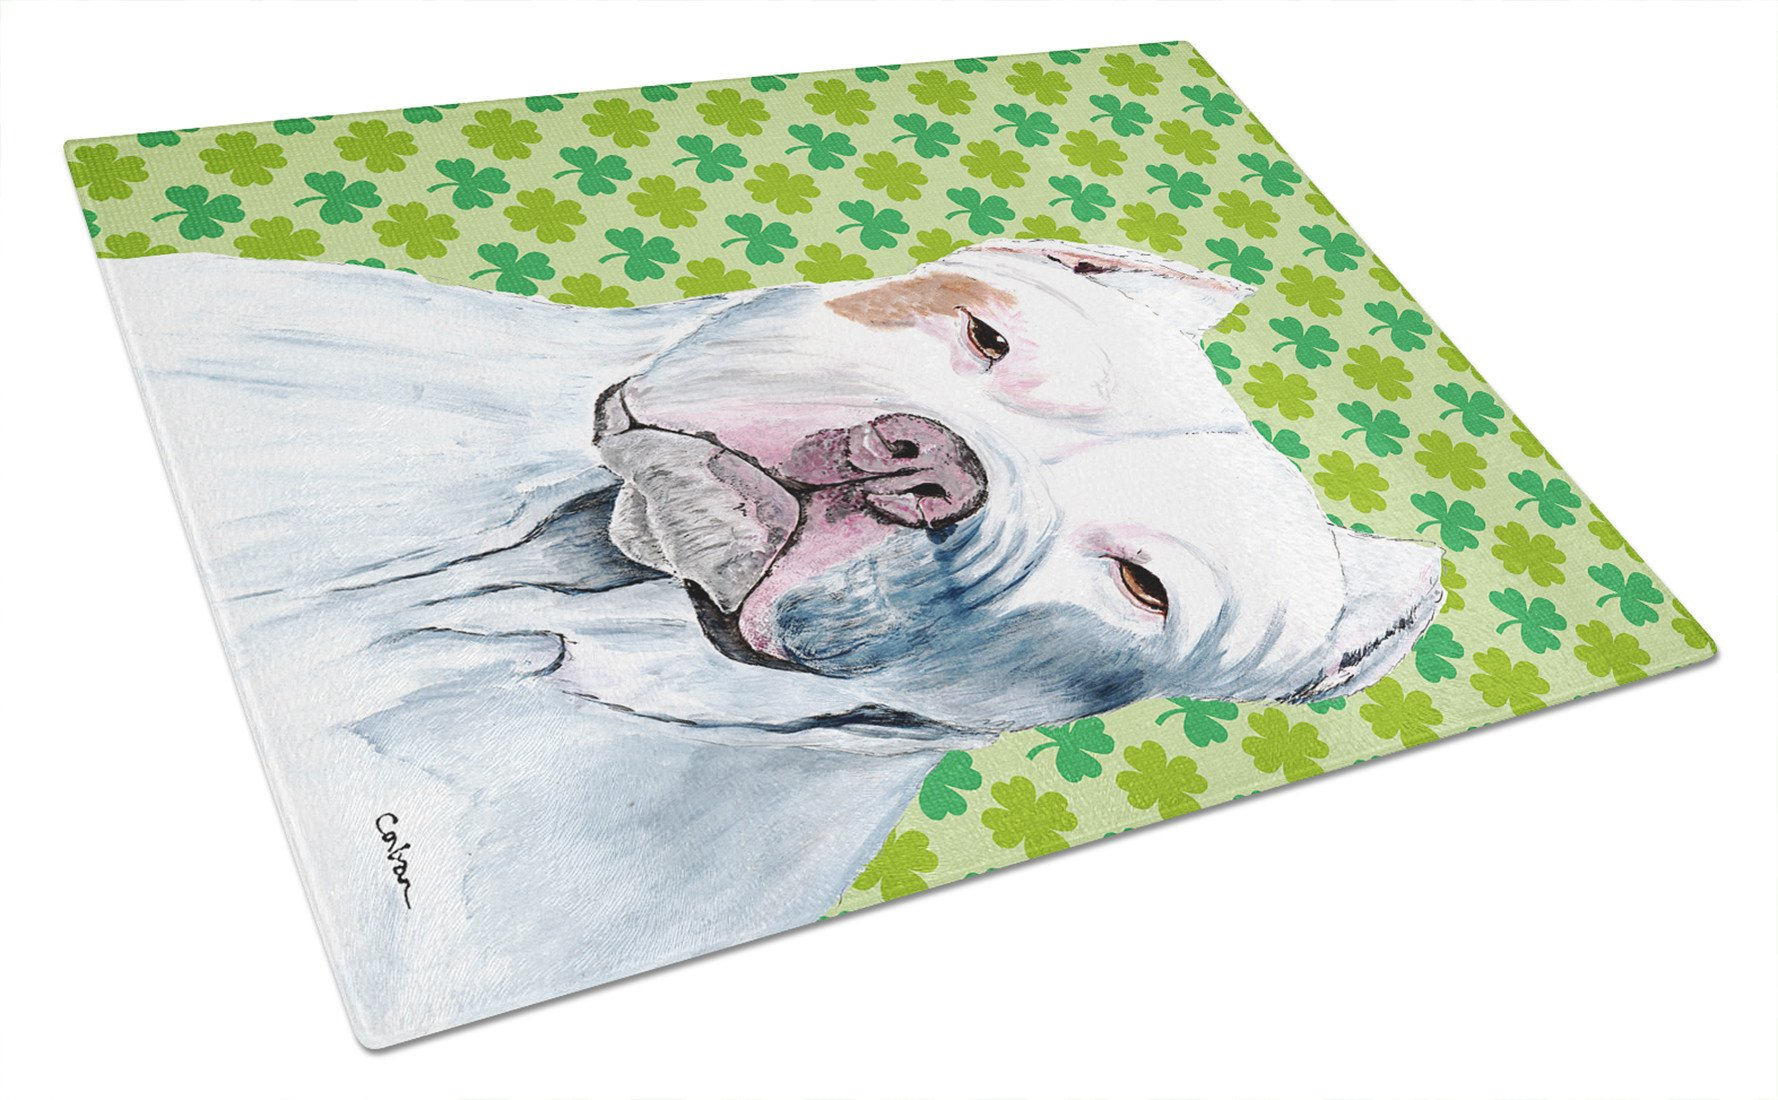 Pit Bull St. Patrick's Day Shamrock Portrait Glass Cutting Board Large by Caroline's Treasures